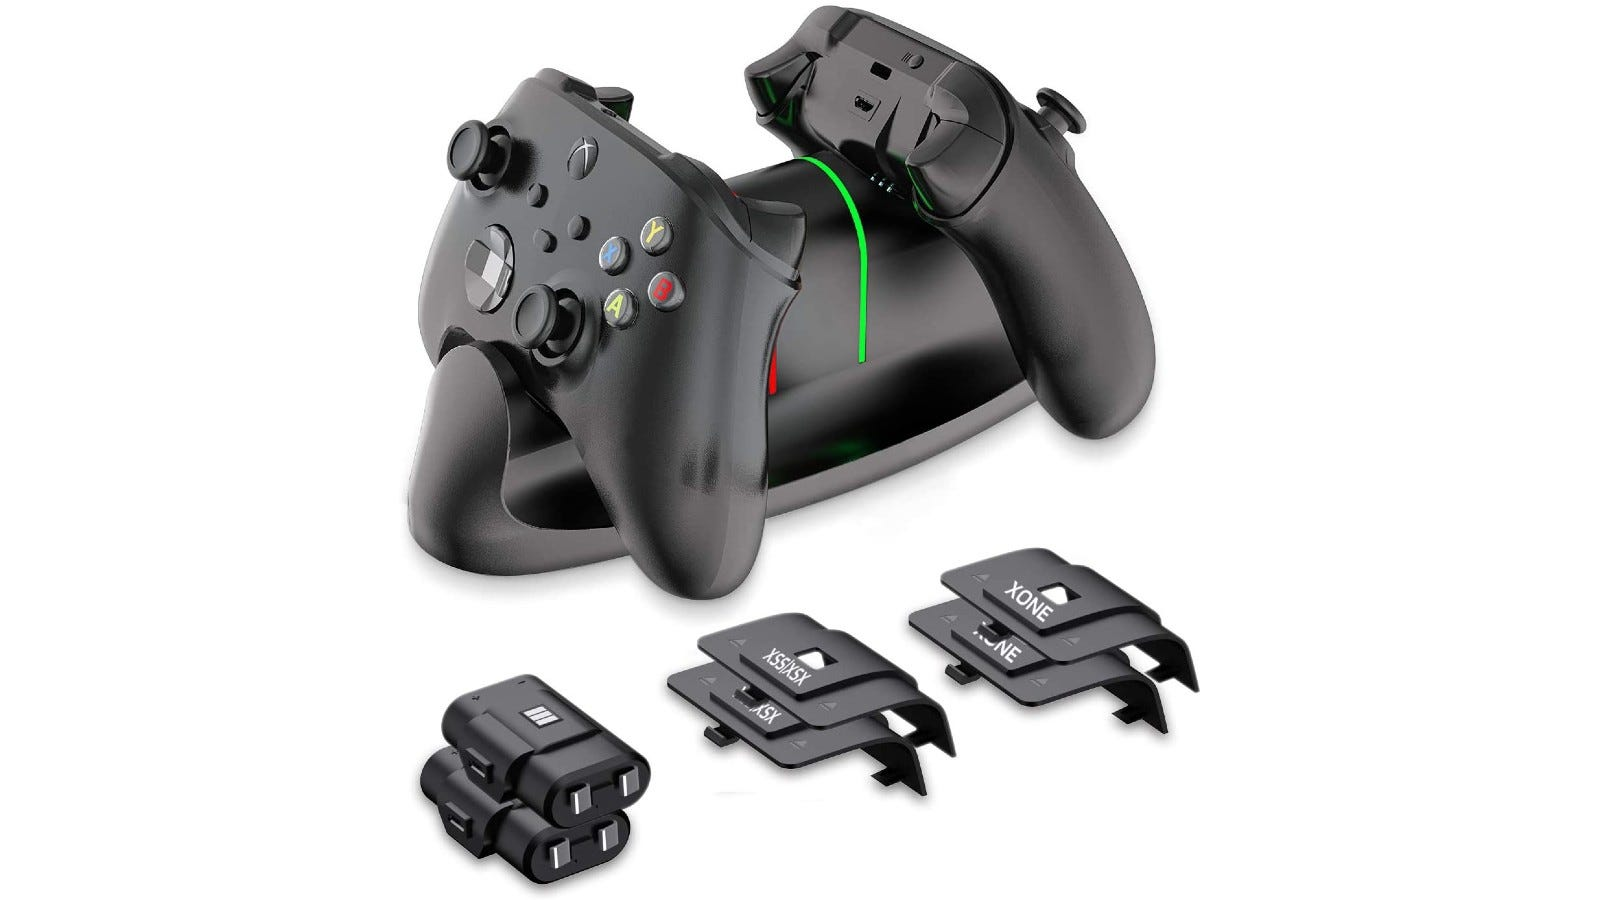 This charging station is compatible with all Xbox controllers